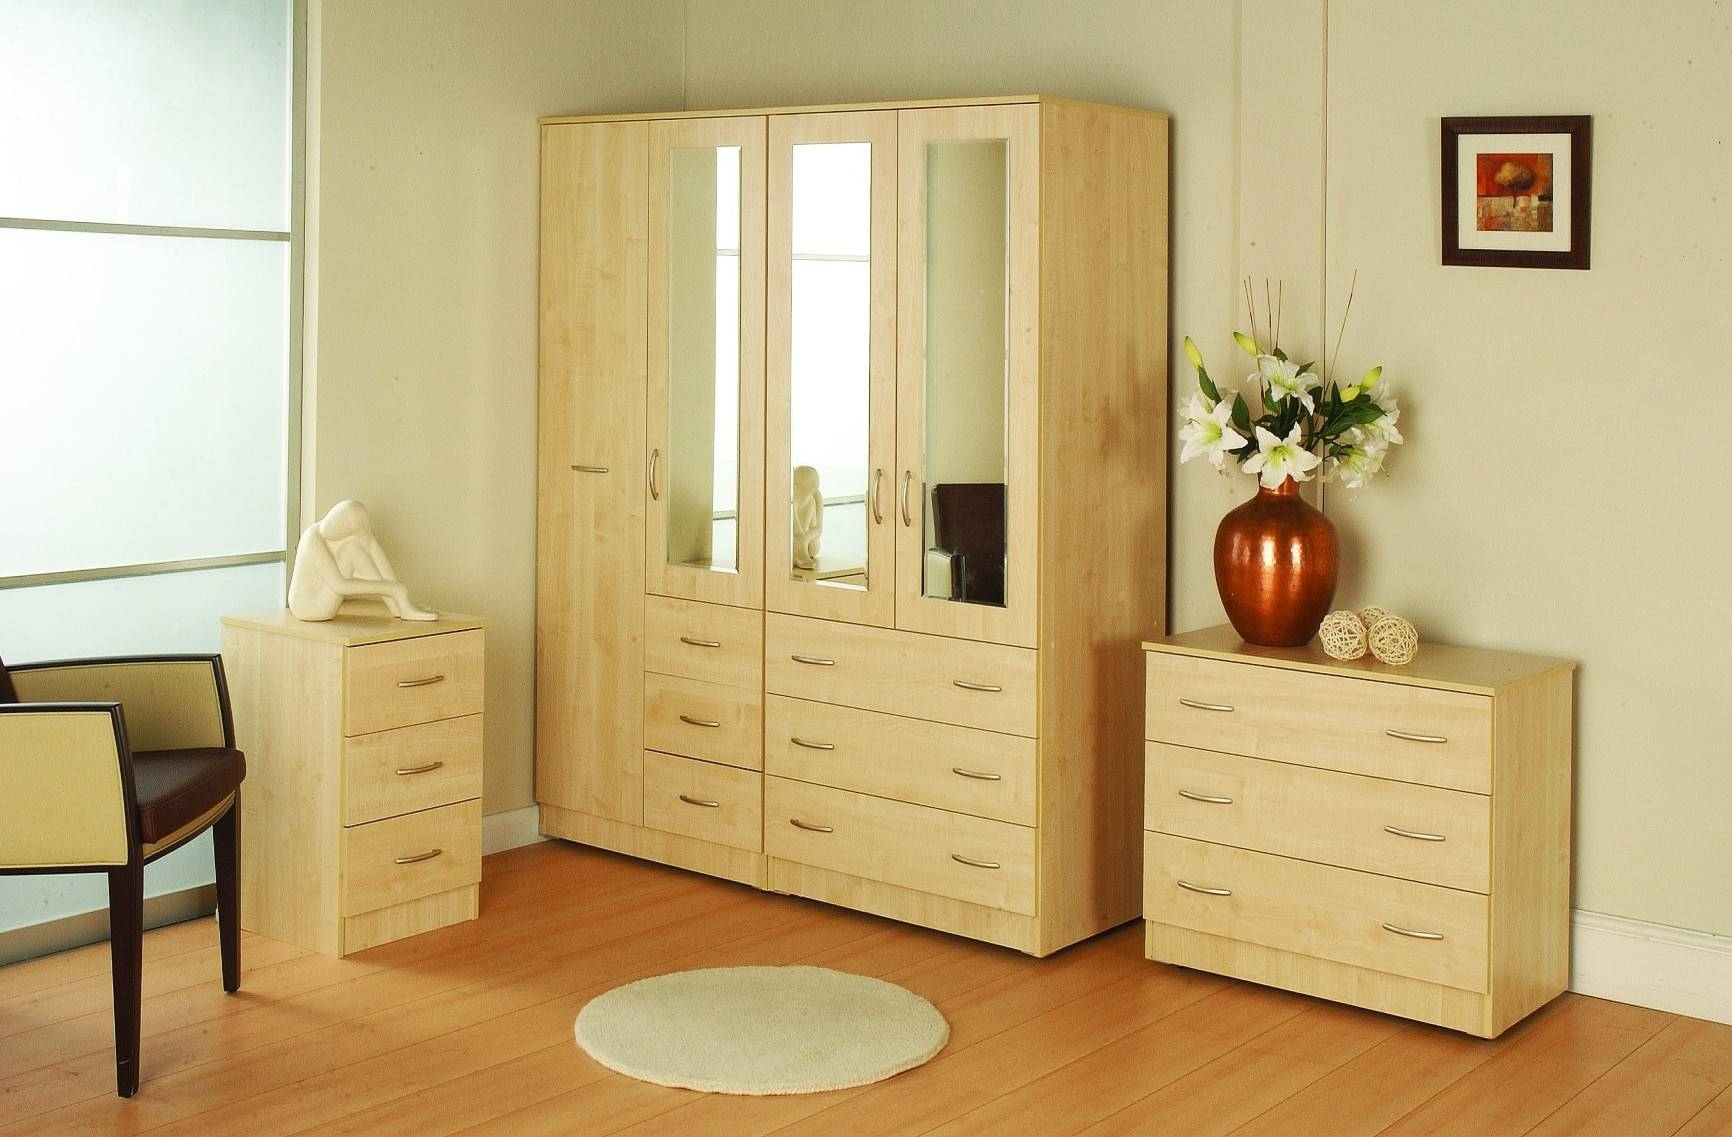 Adams Furniture Store - Bedroom for Wardrobes Chest of Drawers Combination (Image 1 of 15)